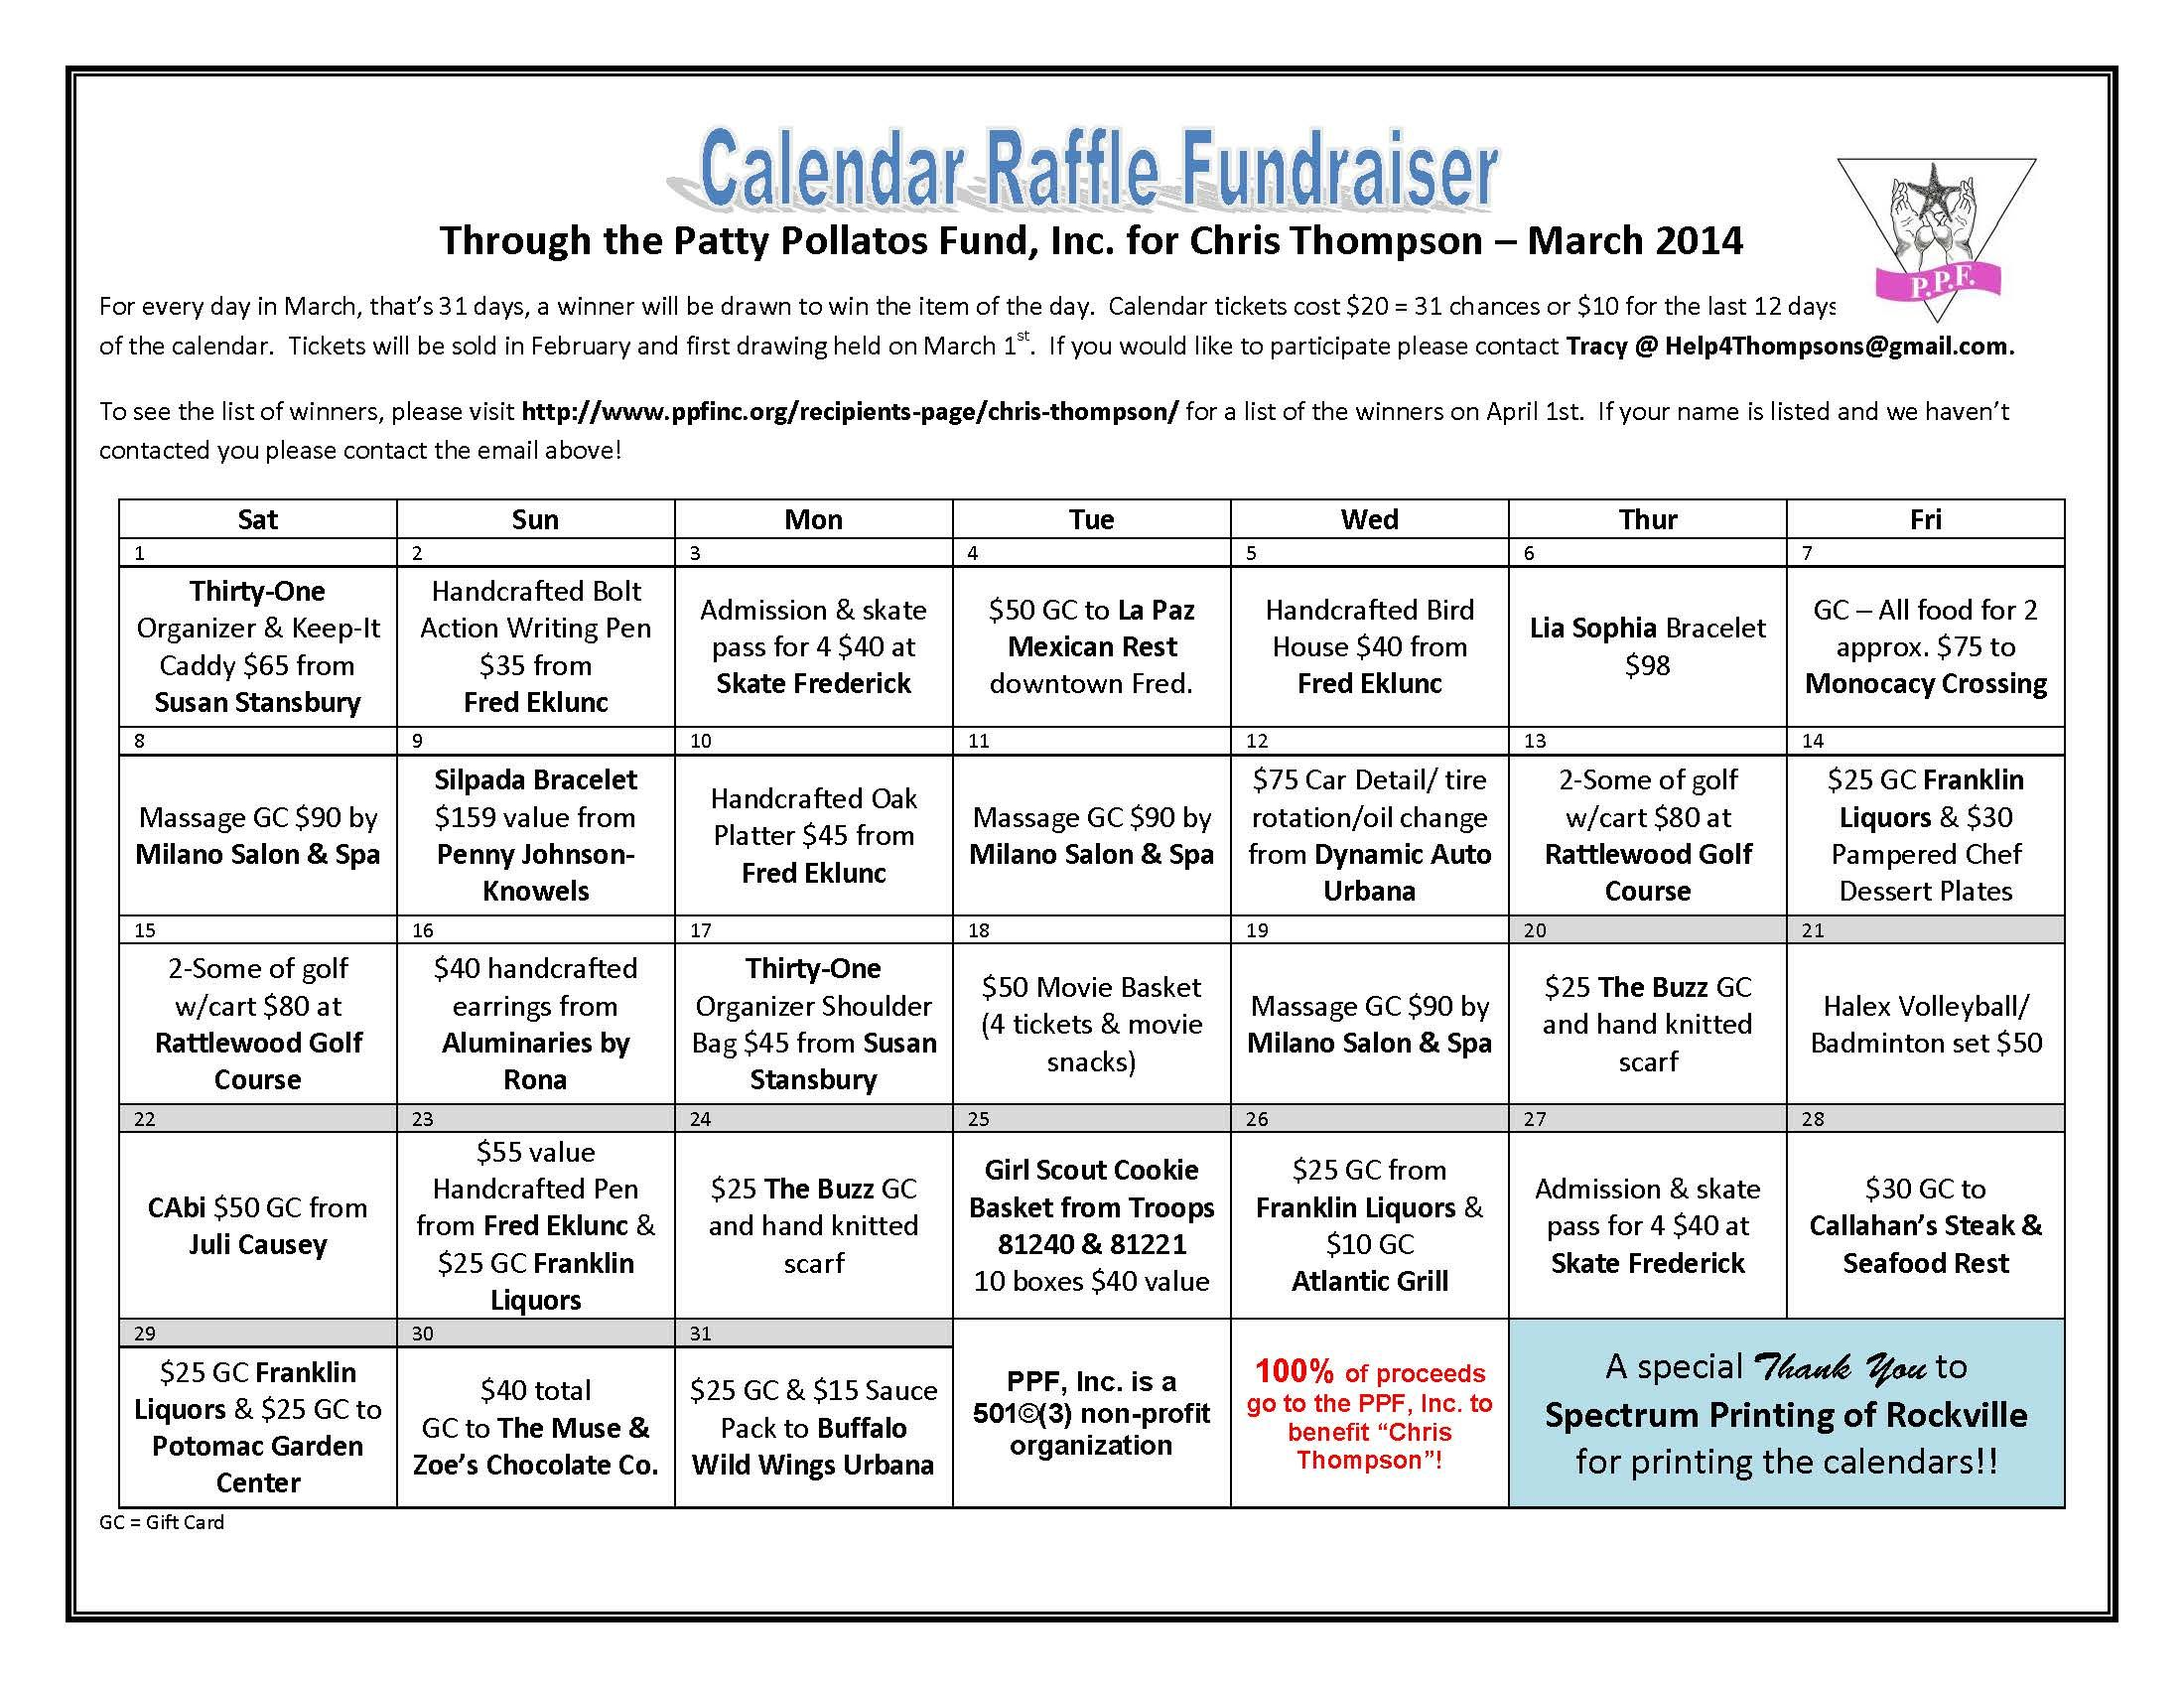 Calendar Raffle Ideas : Thompson raffle fundraiser calendar final pta